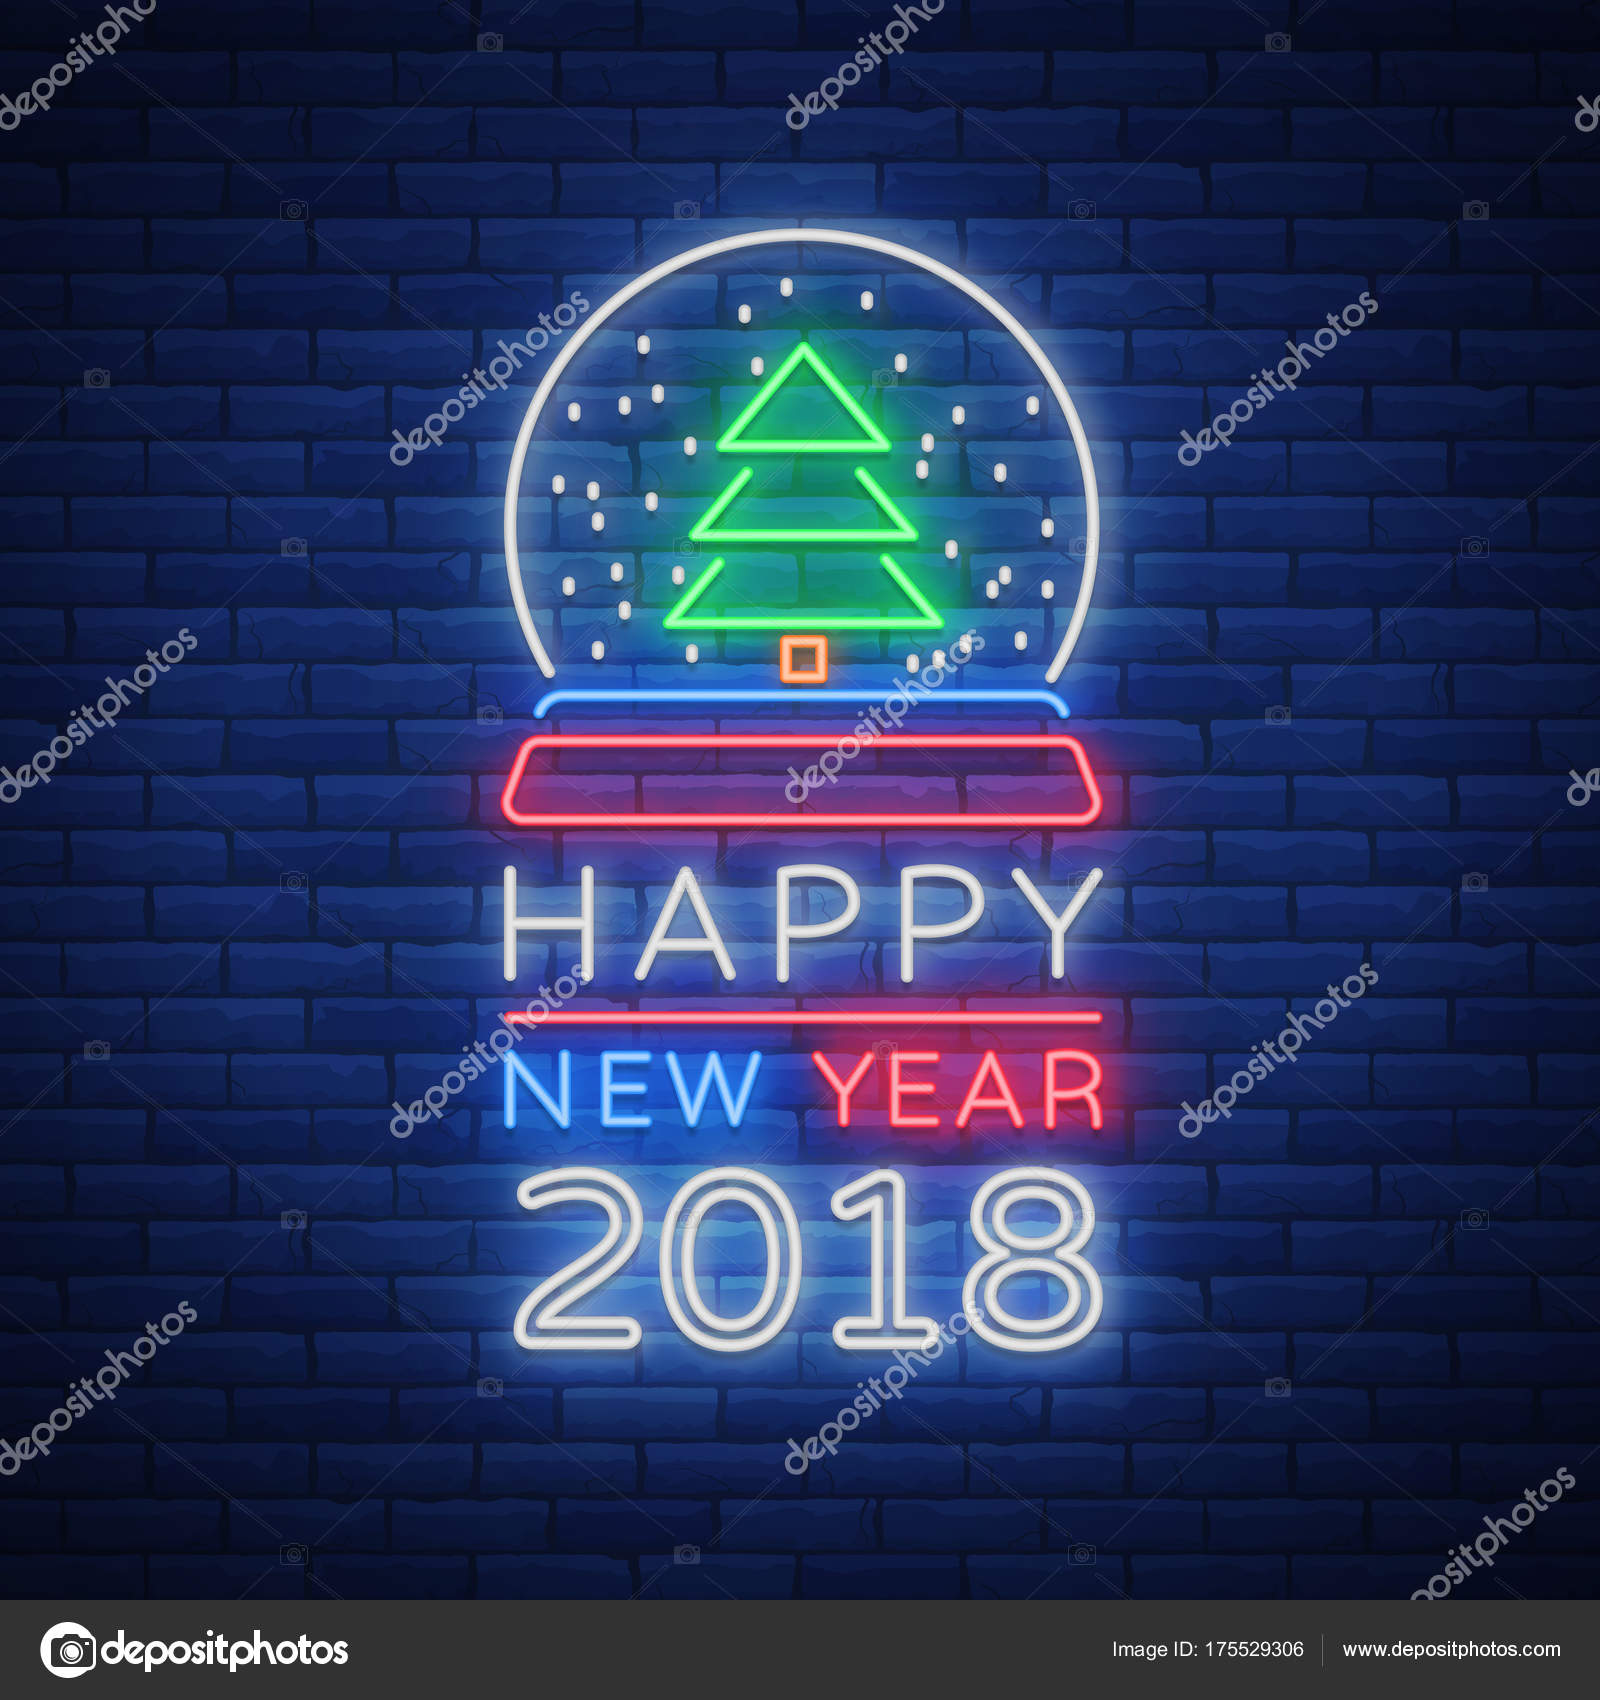 Happy new year 2018 is a neon sign neon symbol for your new years happy new year 2018 is a neon sign neon symbol for your new years projects greetings cards flyers banners bright festive signboard luminous m4hsunfo